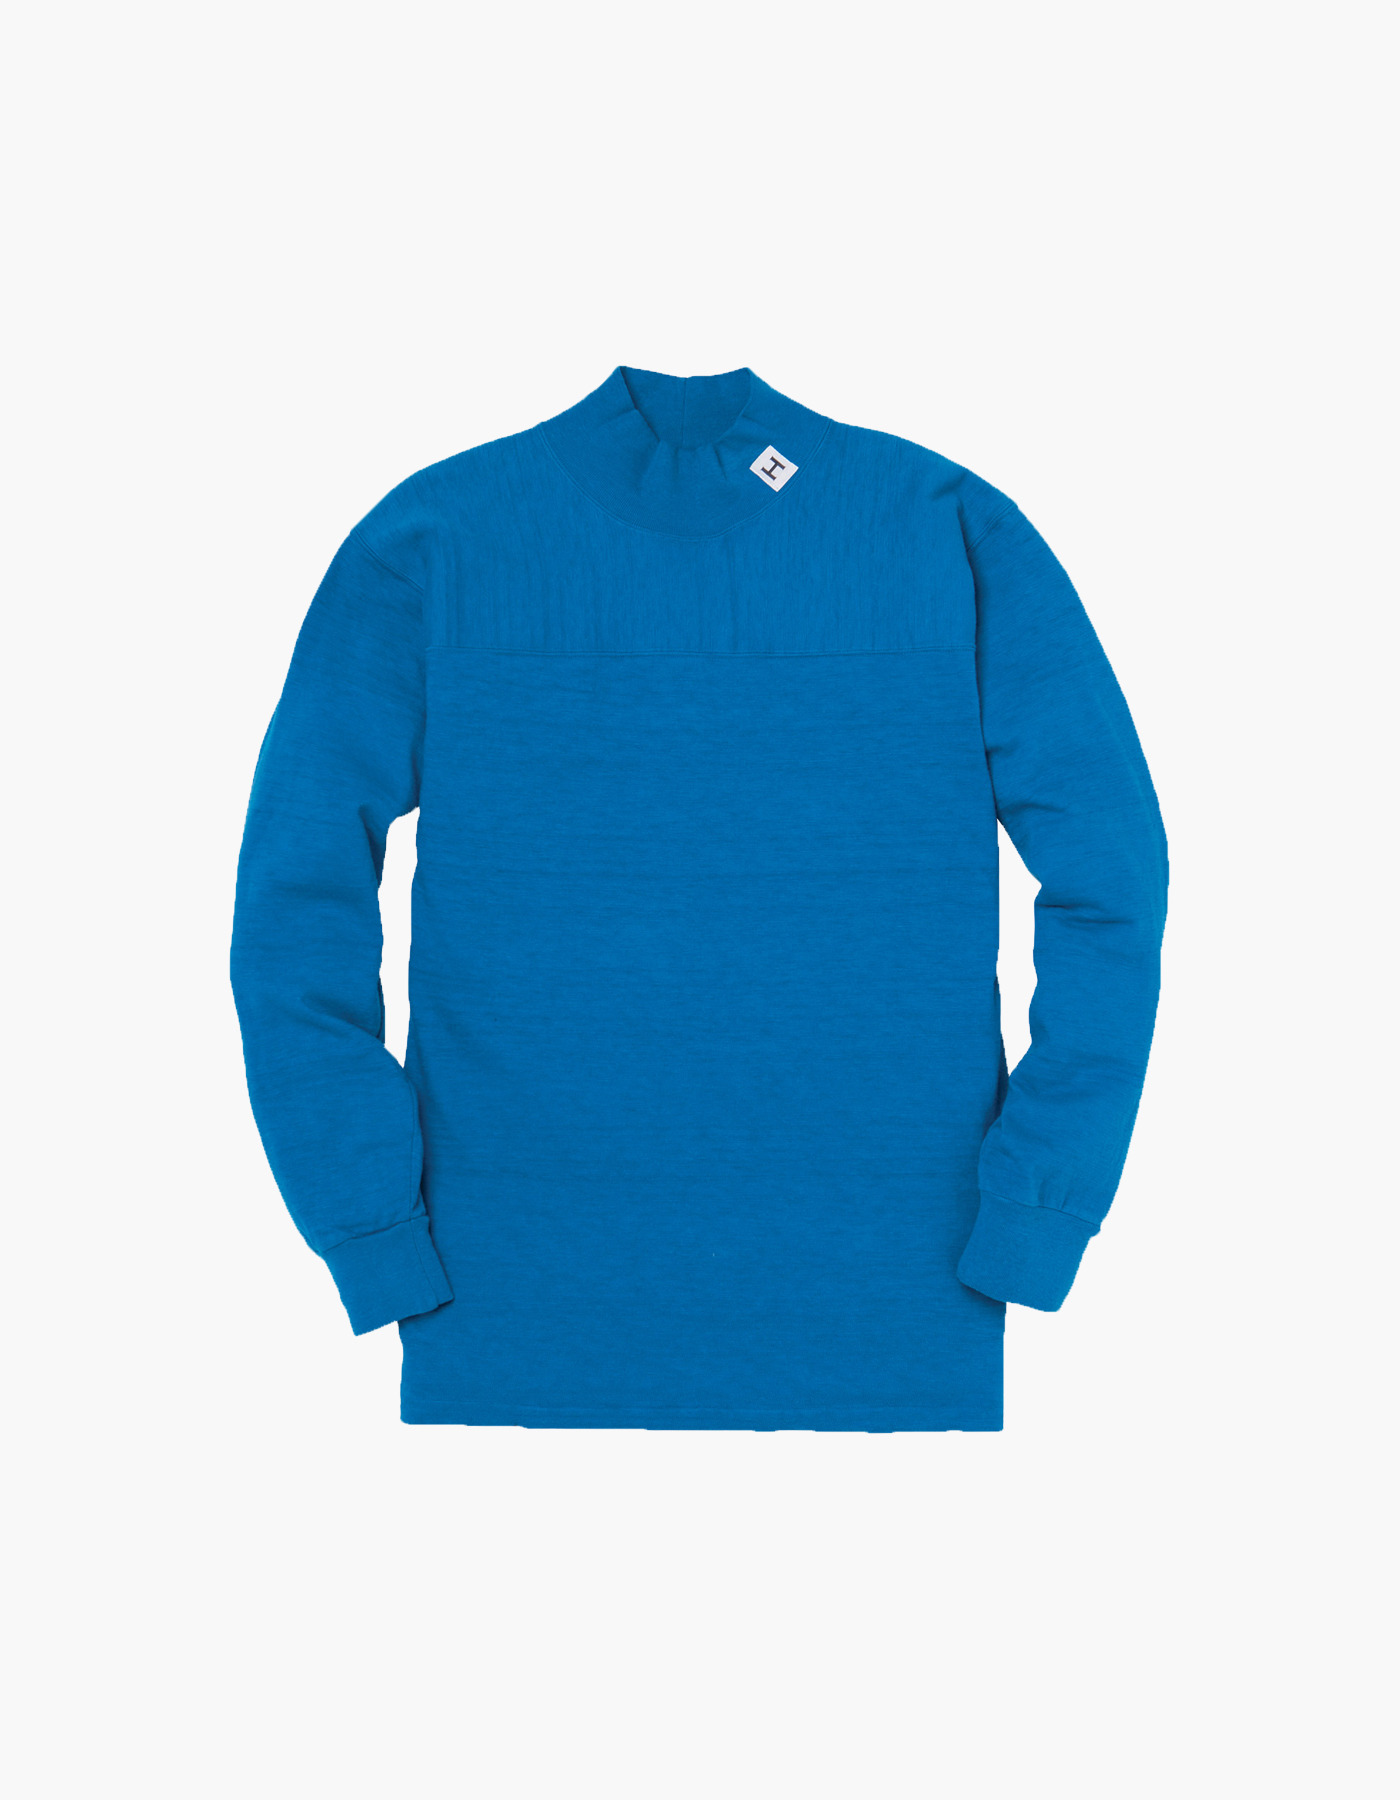 H FOOTBALL SLUB MOC-NECK BY DUBBLE WORKS / BLUE